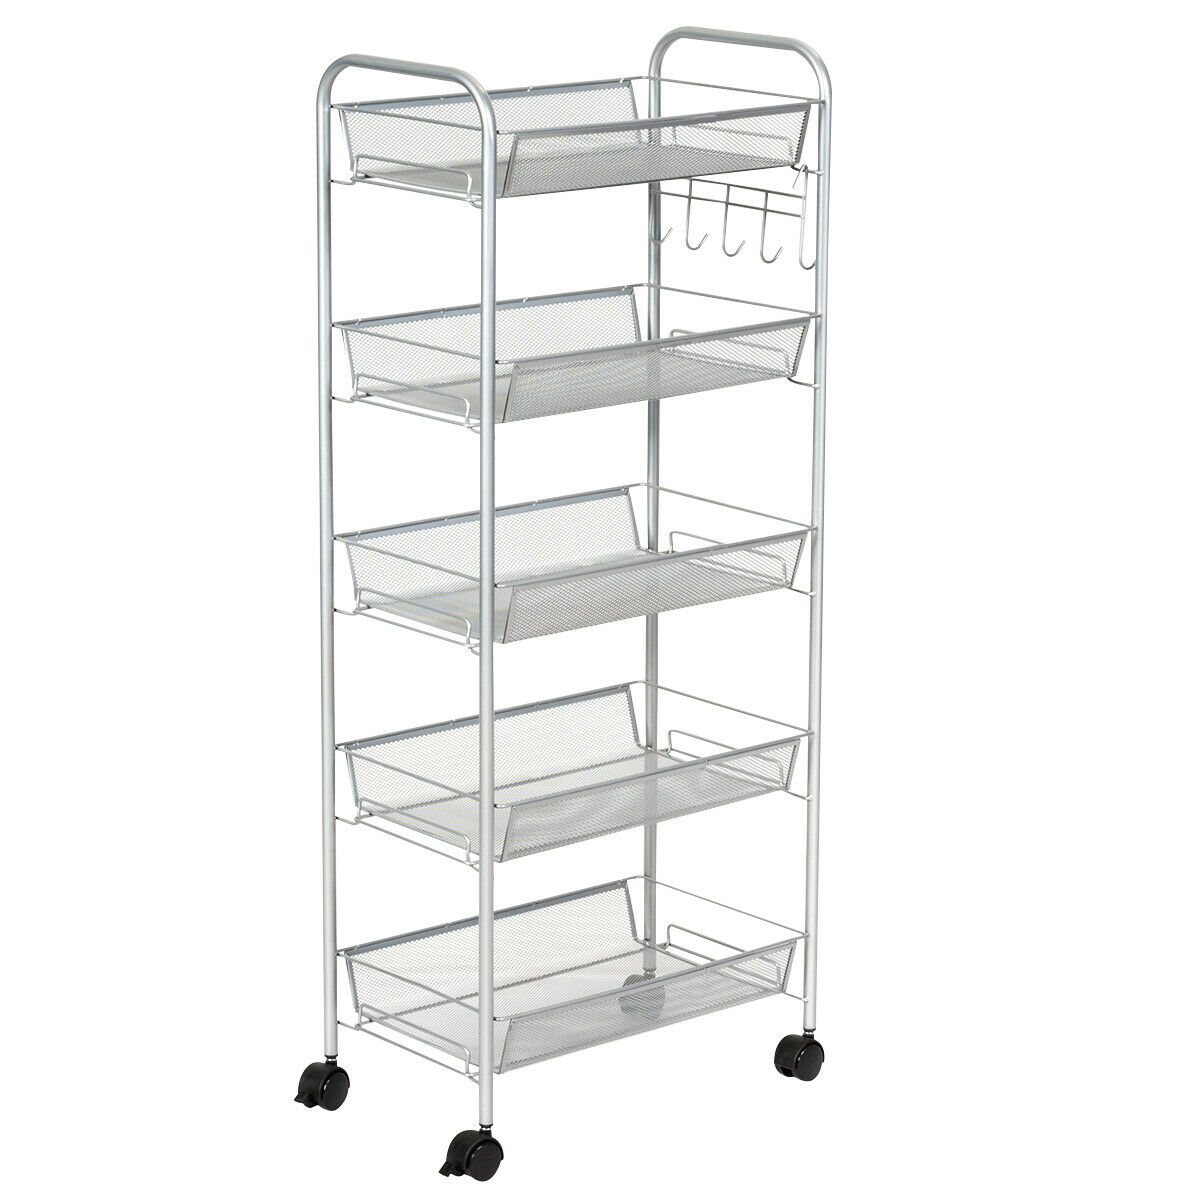 Costway 5 Tier Mesh Rolling File Utility Cart Storage Basket Home Office Kitchen Grey